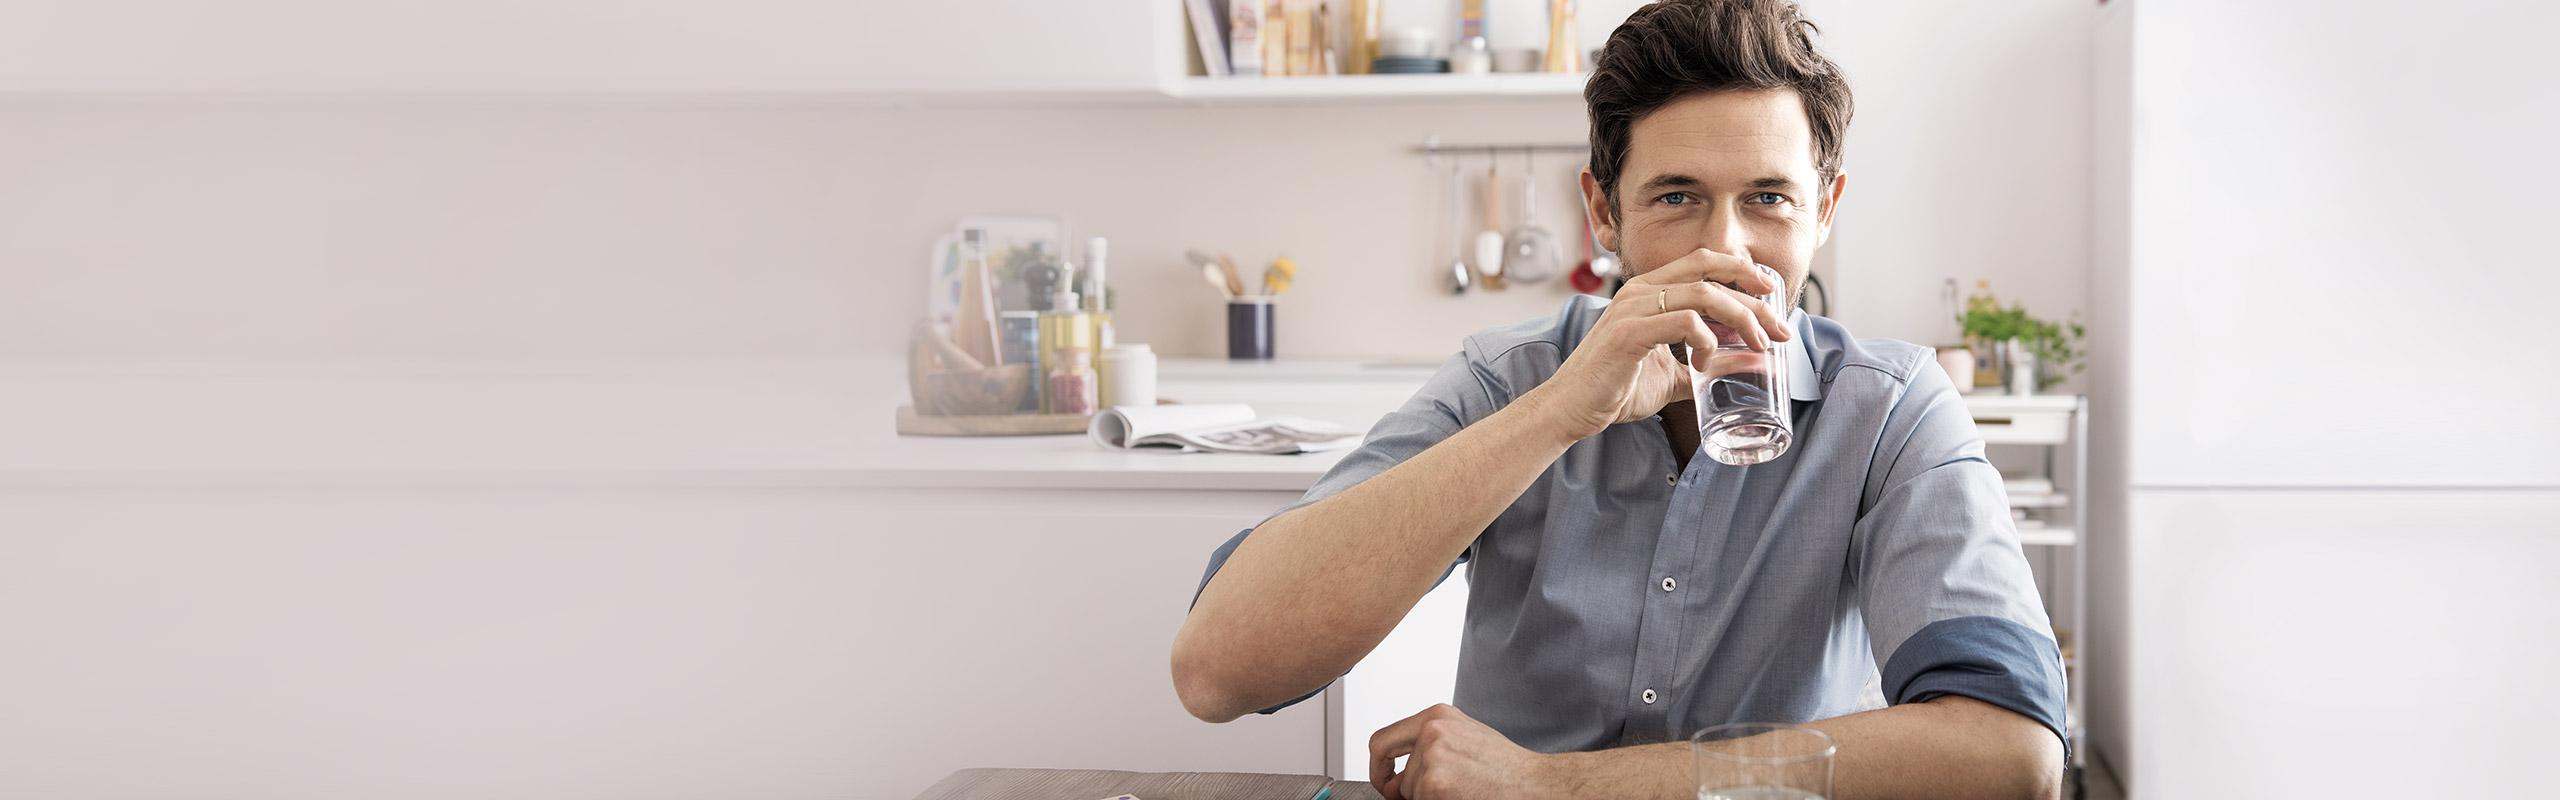 A man is sitting in a kitchen and drinking water.